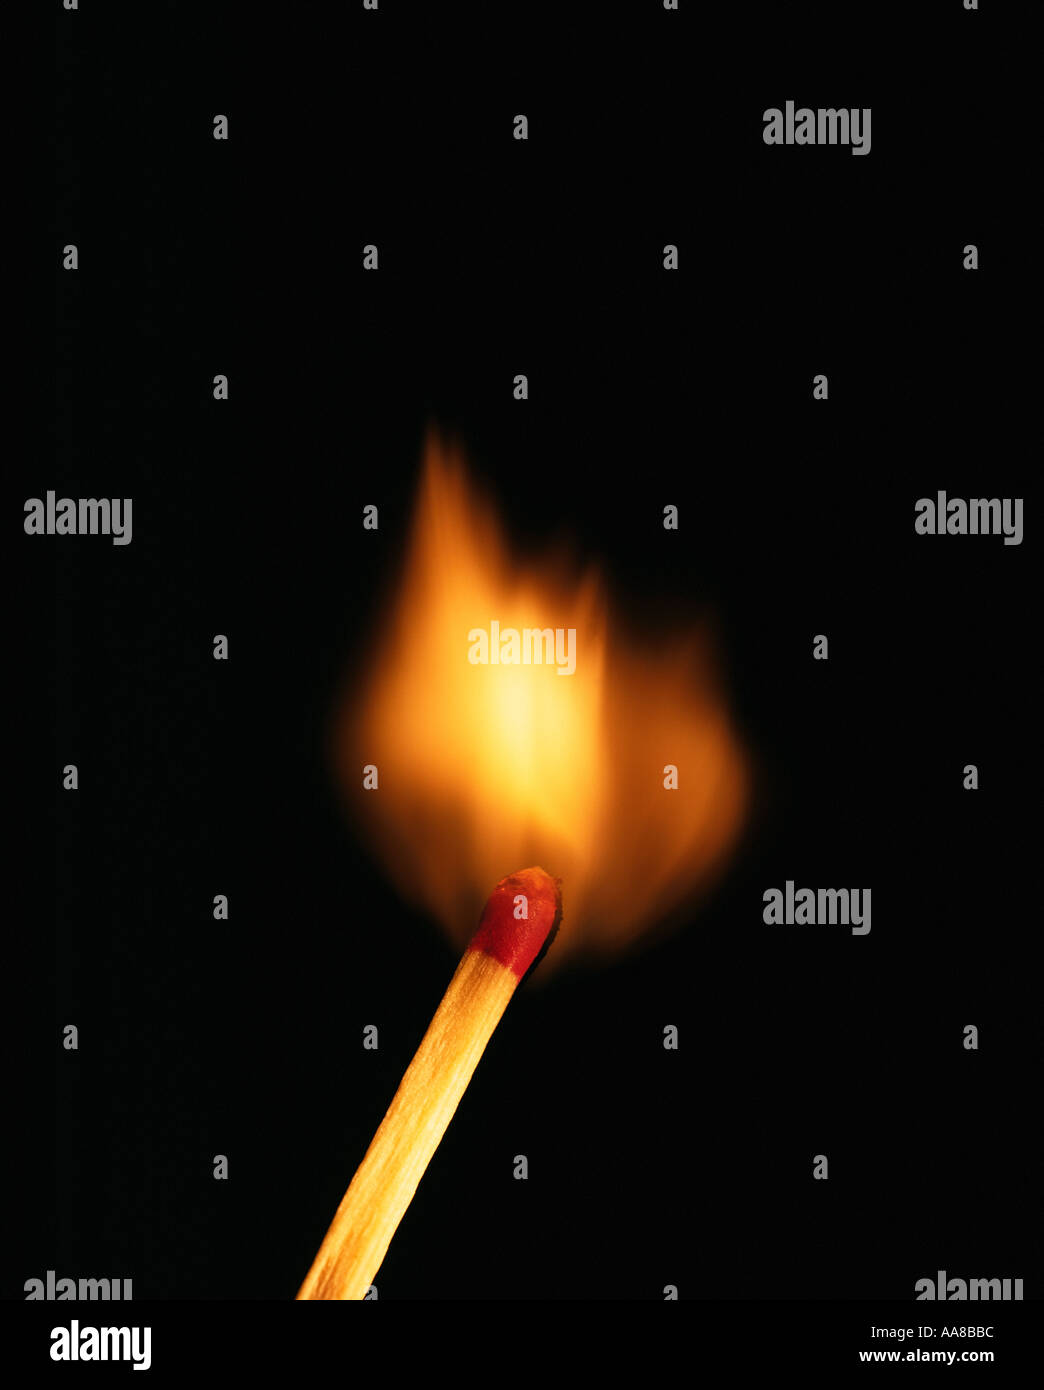 SINGLE BURNING MATCH ON BLACK BACKGROUND - Stock Image